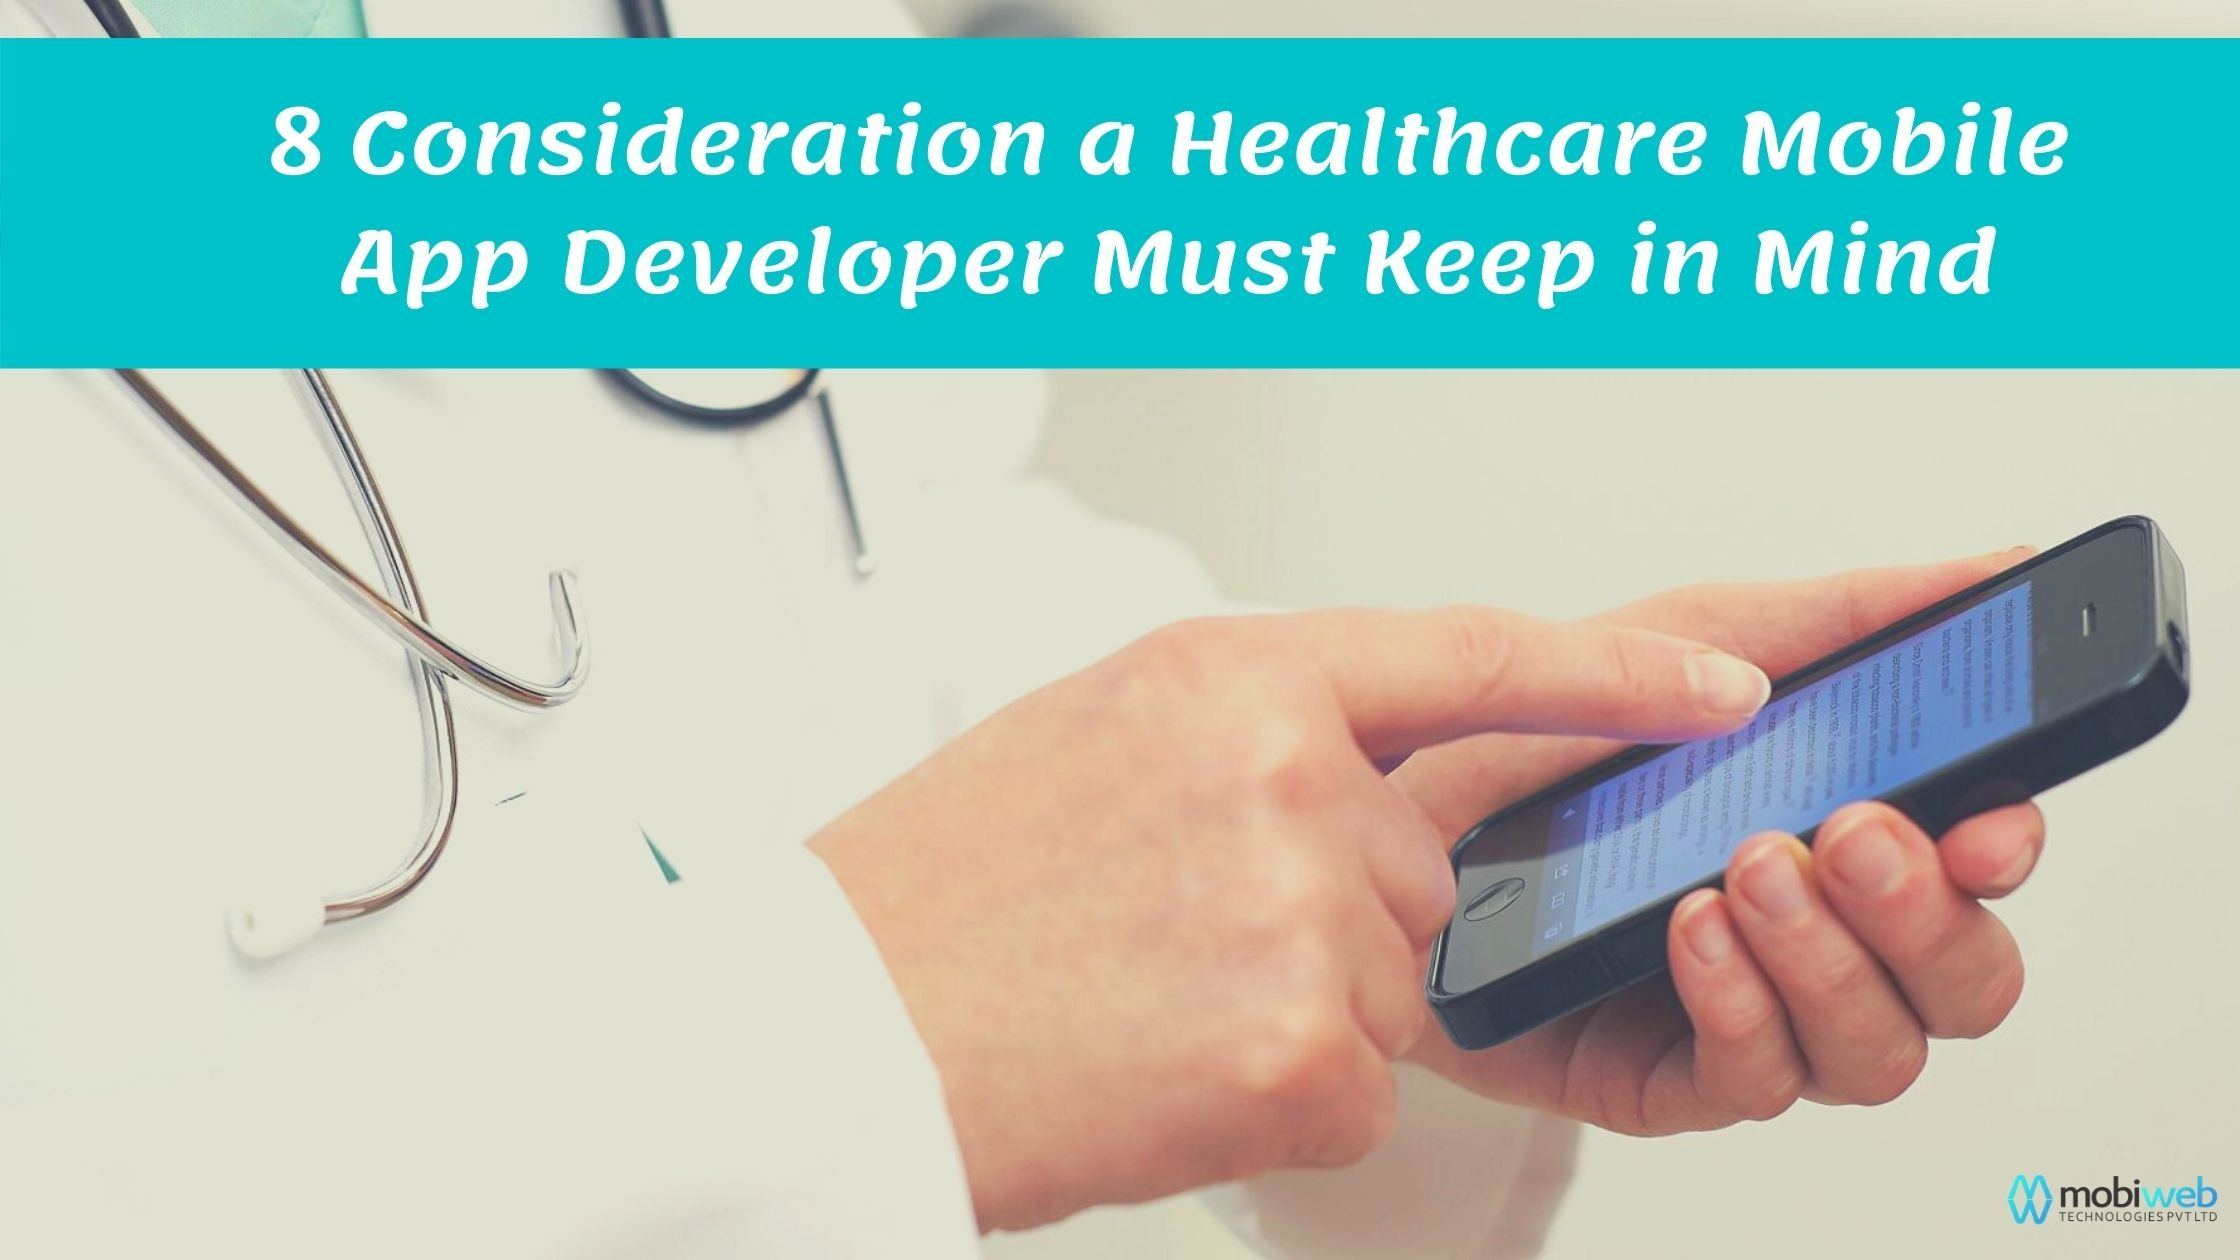 8 Consideration a Healthcare Mobile App Developer Must Keep in Mind